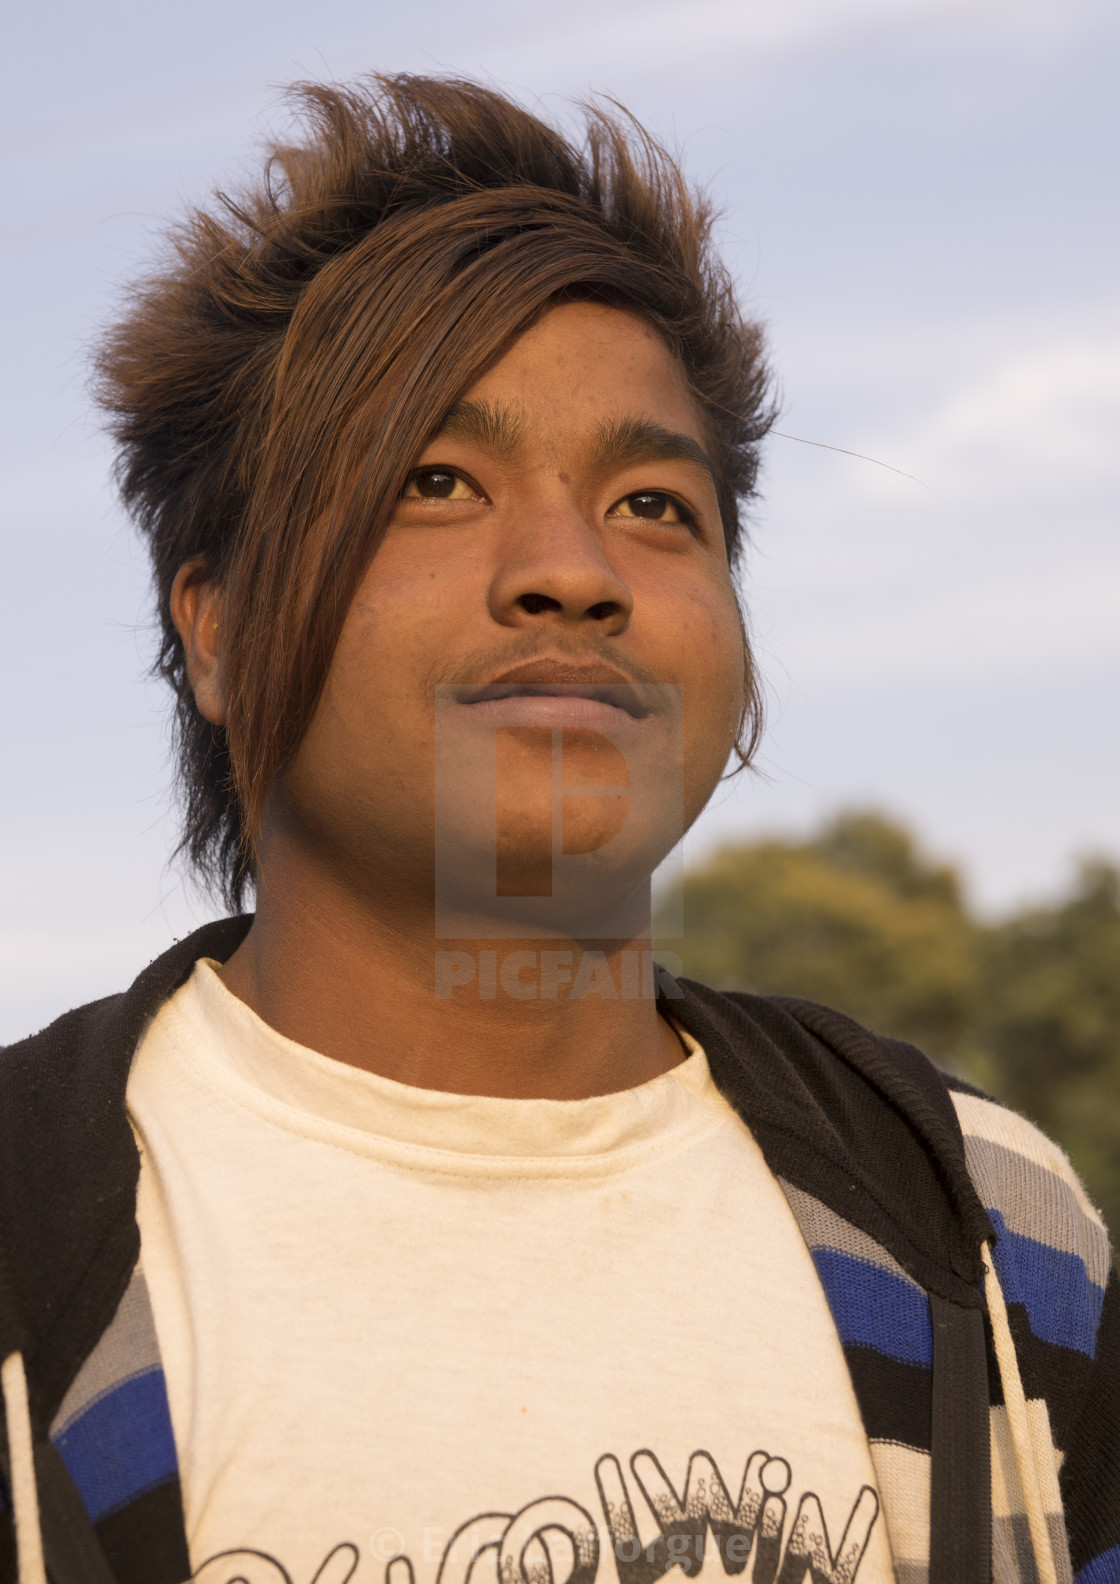 Young Man With A Stylish Haircut Mindat Myanmar License For